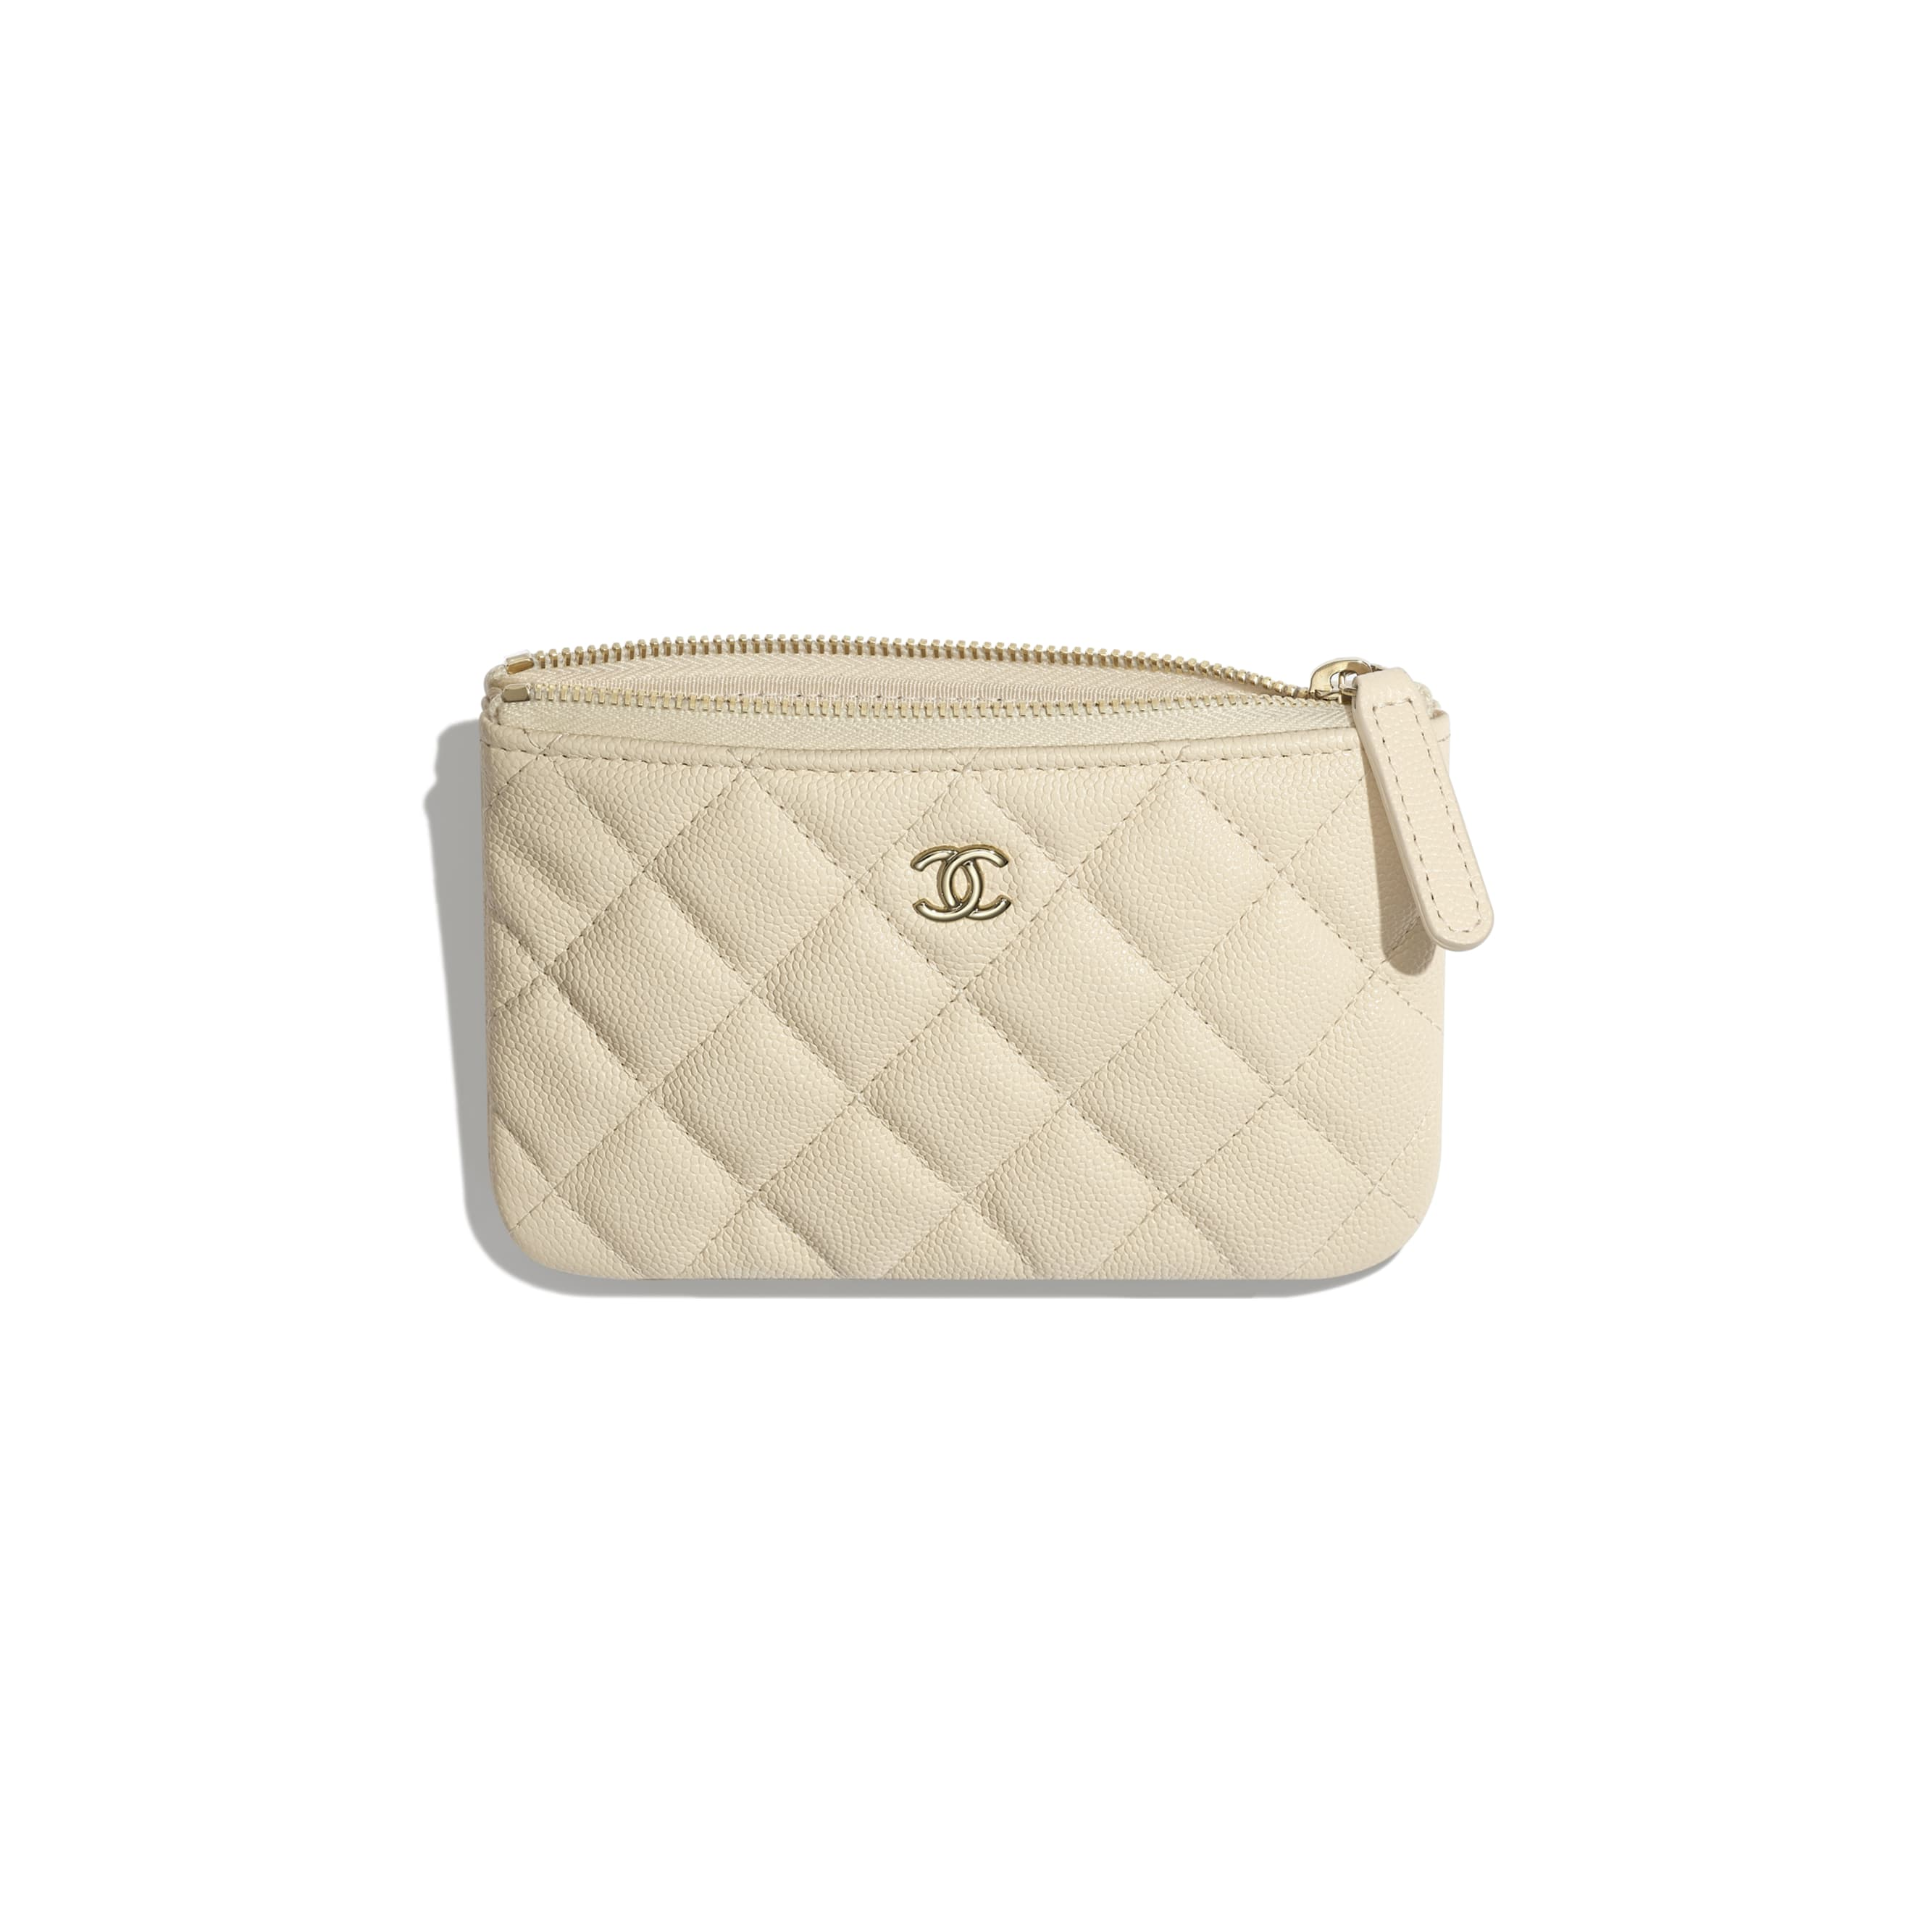 Classic Mini Pouch - Light Beige - Grained Calfskin & Gold-Tone Metal - CHANEL - Other view - see standard sized version